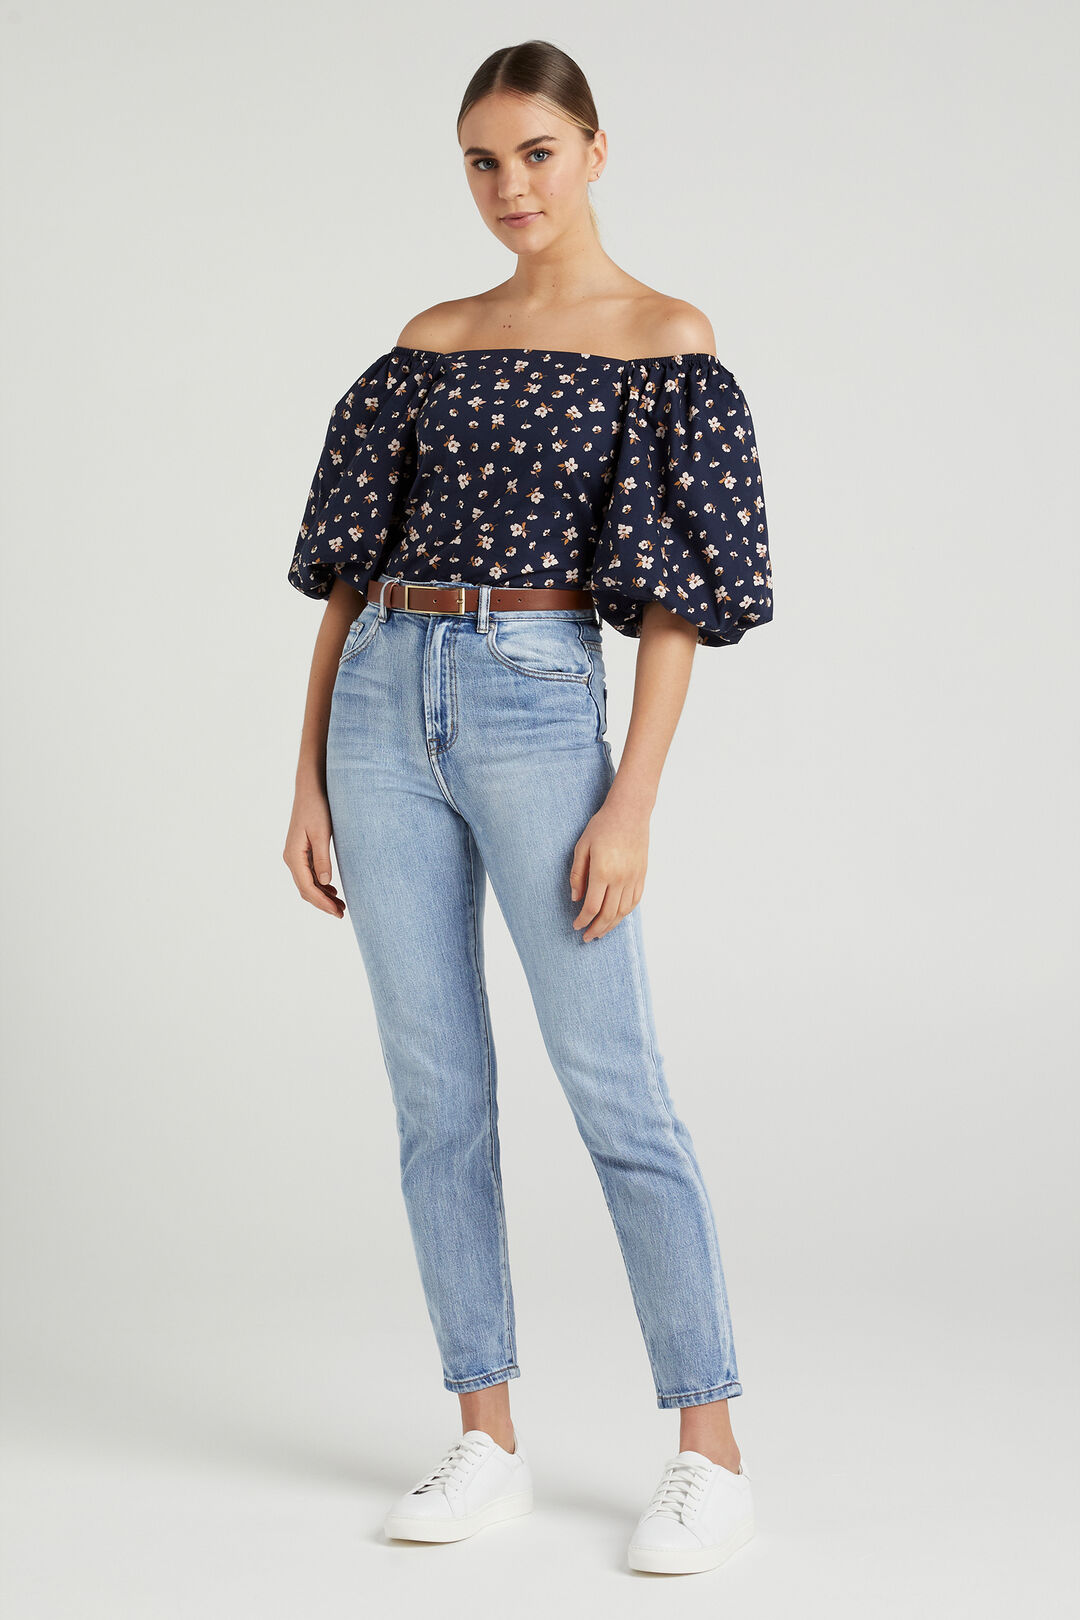 SHIRRED PUFF SLEEVE TOP  MEADOW FLORAL  hi-res